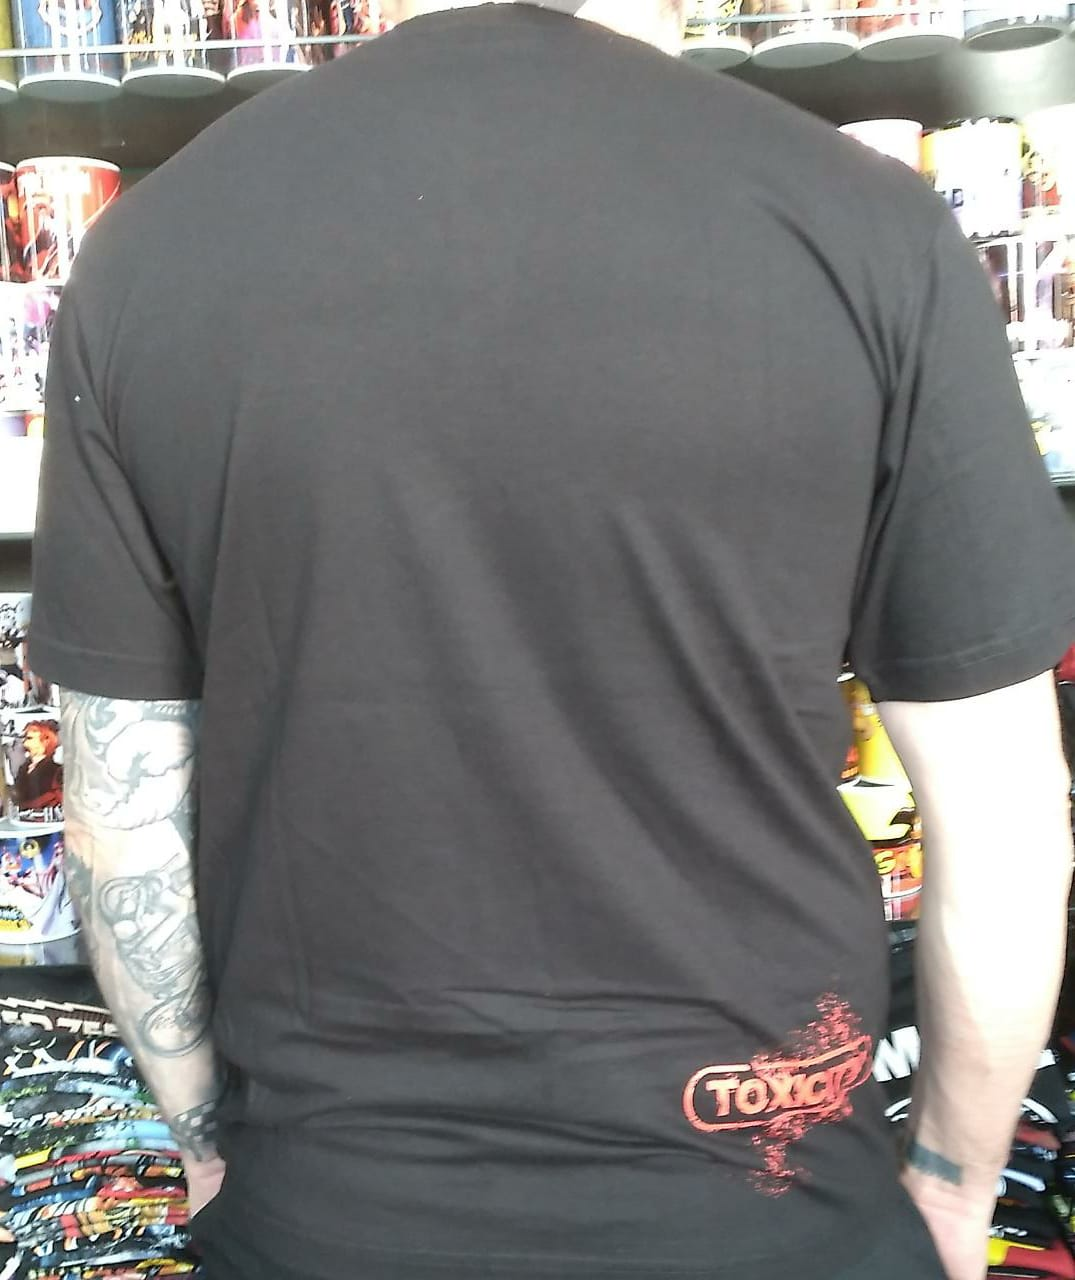 CAMISETA SYSTEM OF DOWN TOXICITY